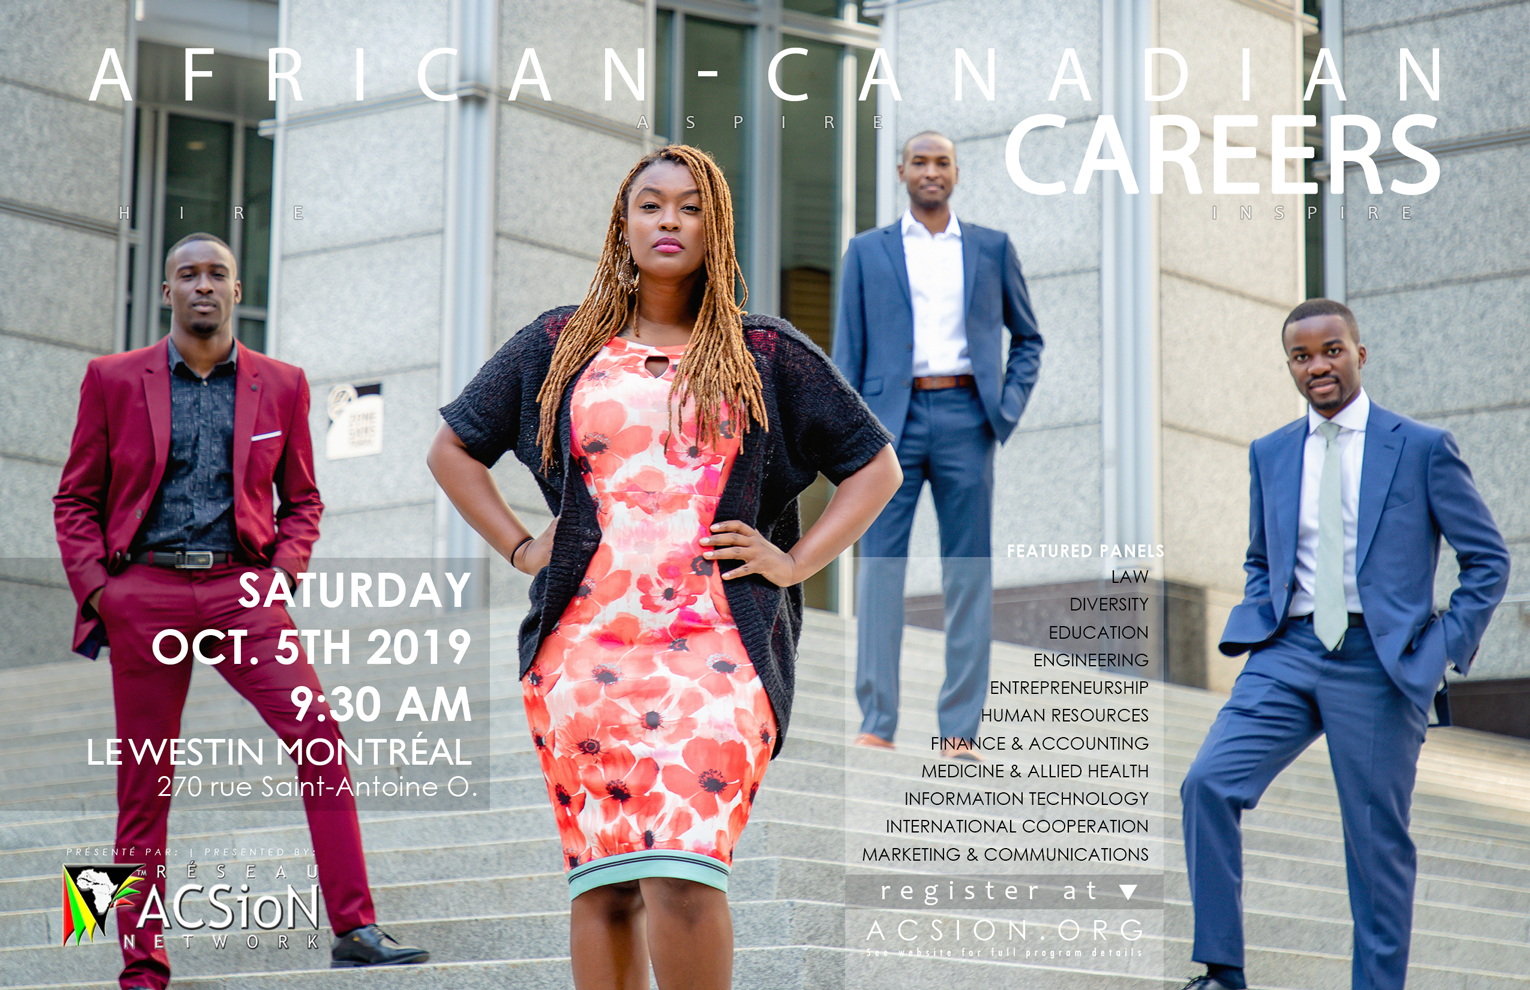 African-Canadian Careers 2019 - Registration